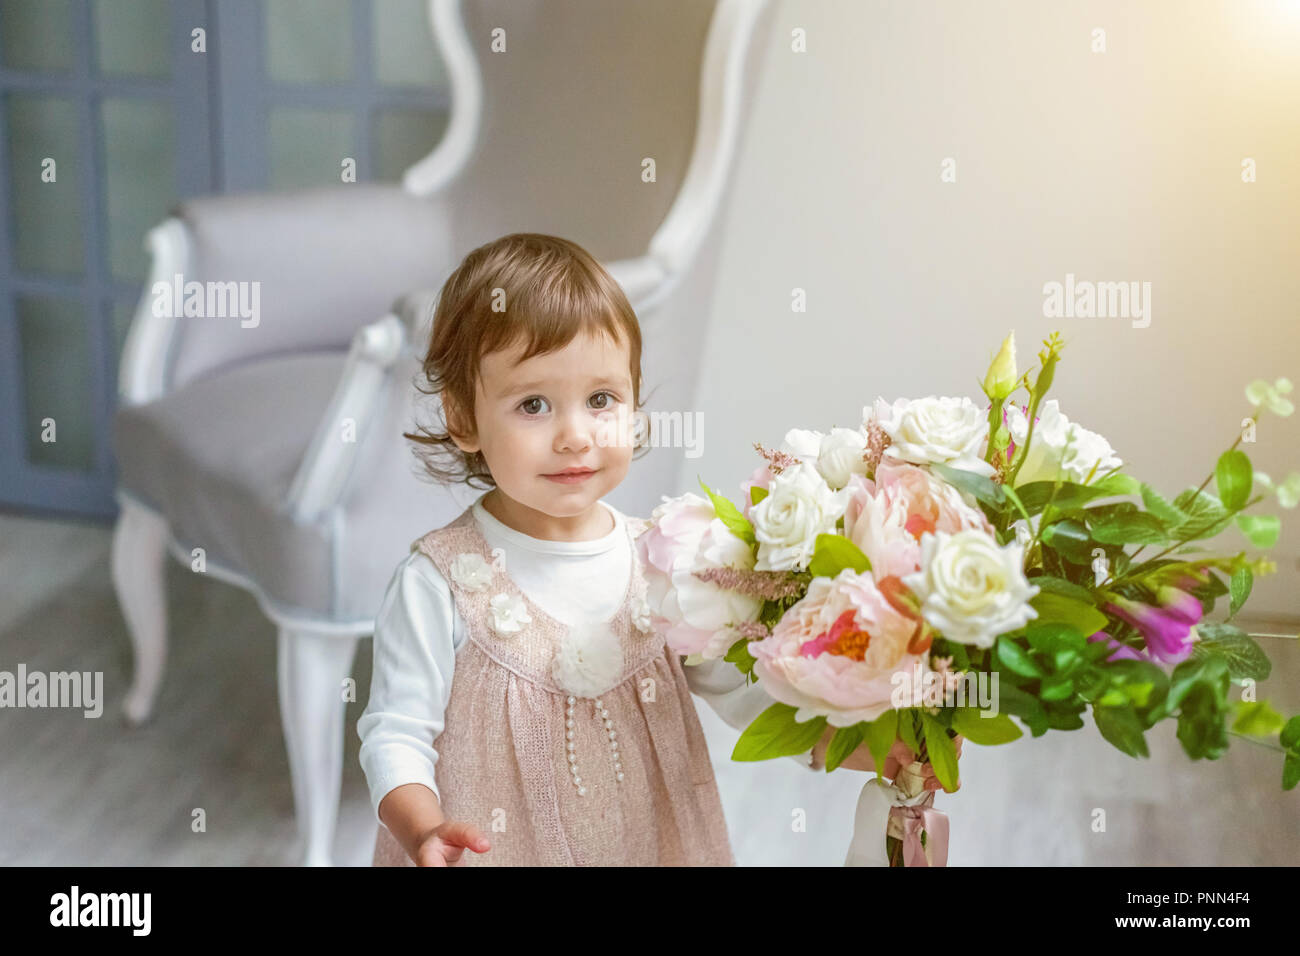 a2cc57212f75 Sweet little girl in pastel pink dress at home play with flowers ...